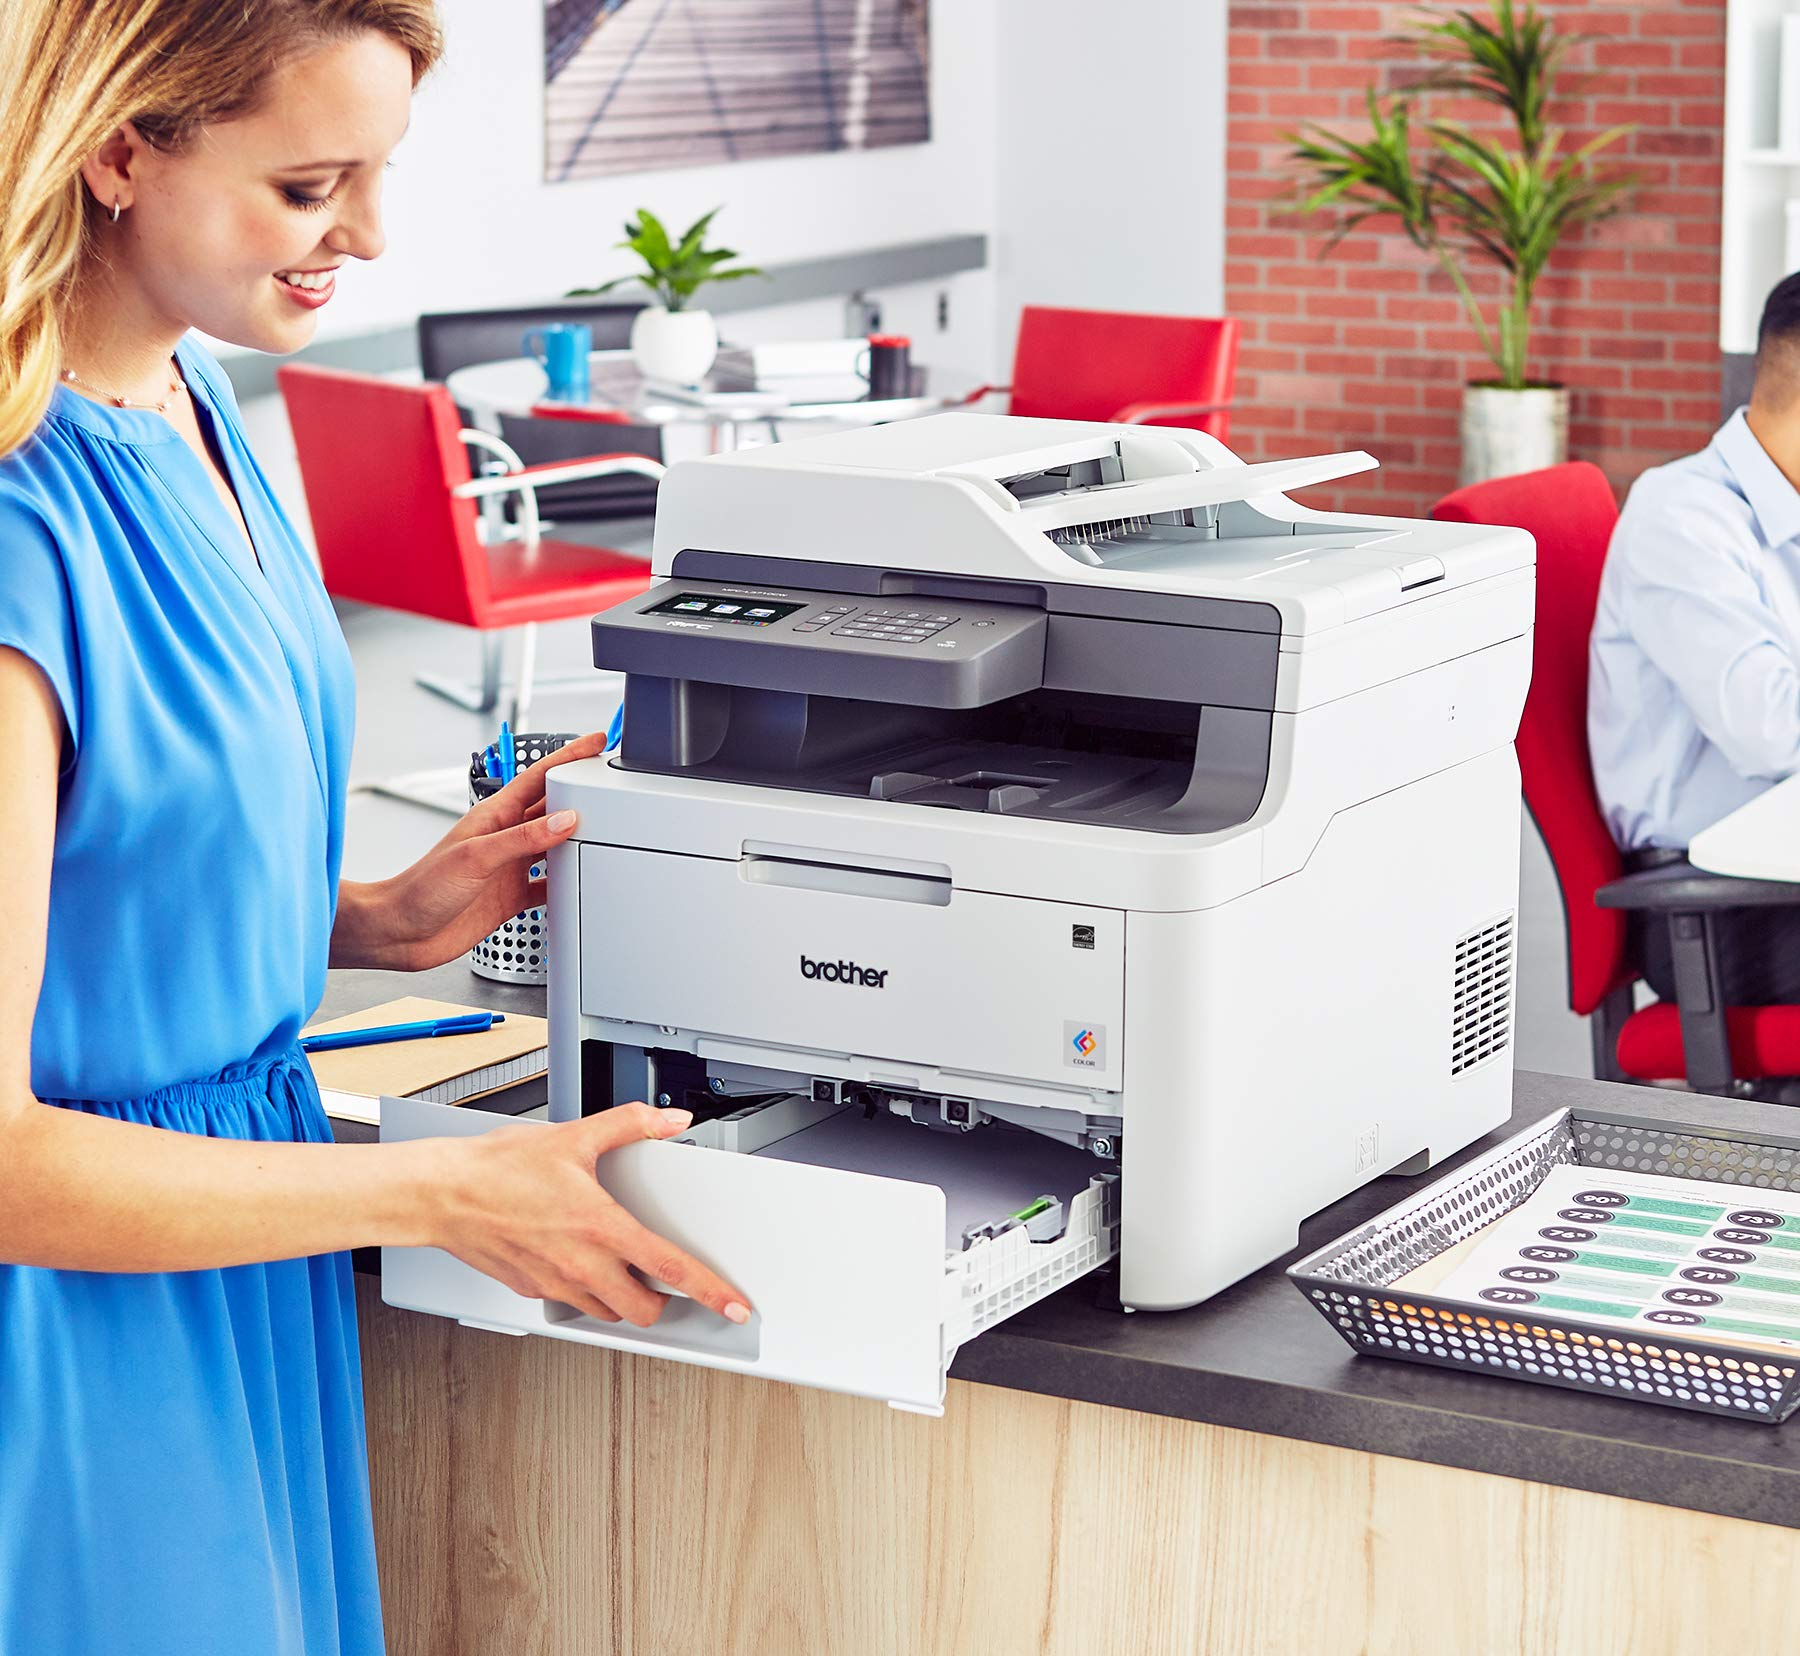 Brother MFC-L3710CW Compact Digital Color All-in-One Printer Providing Laser Printer Quality Results with Wireless, Amazon Dash Replenishment Enabled by Brother (Image #7)